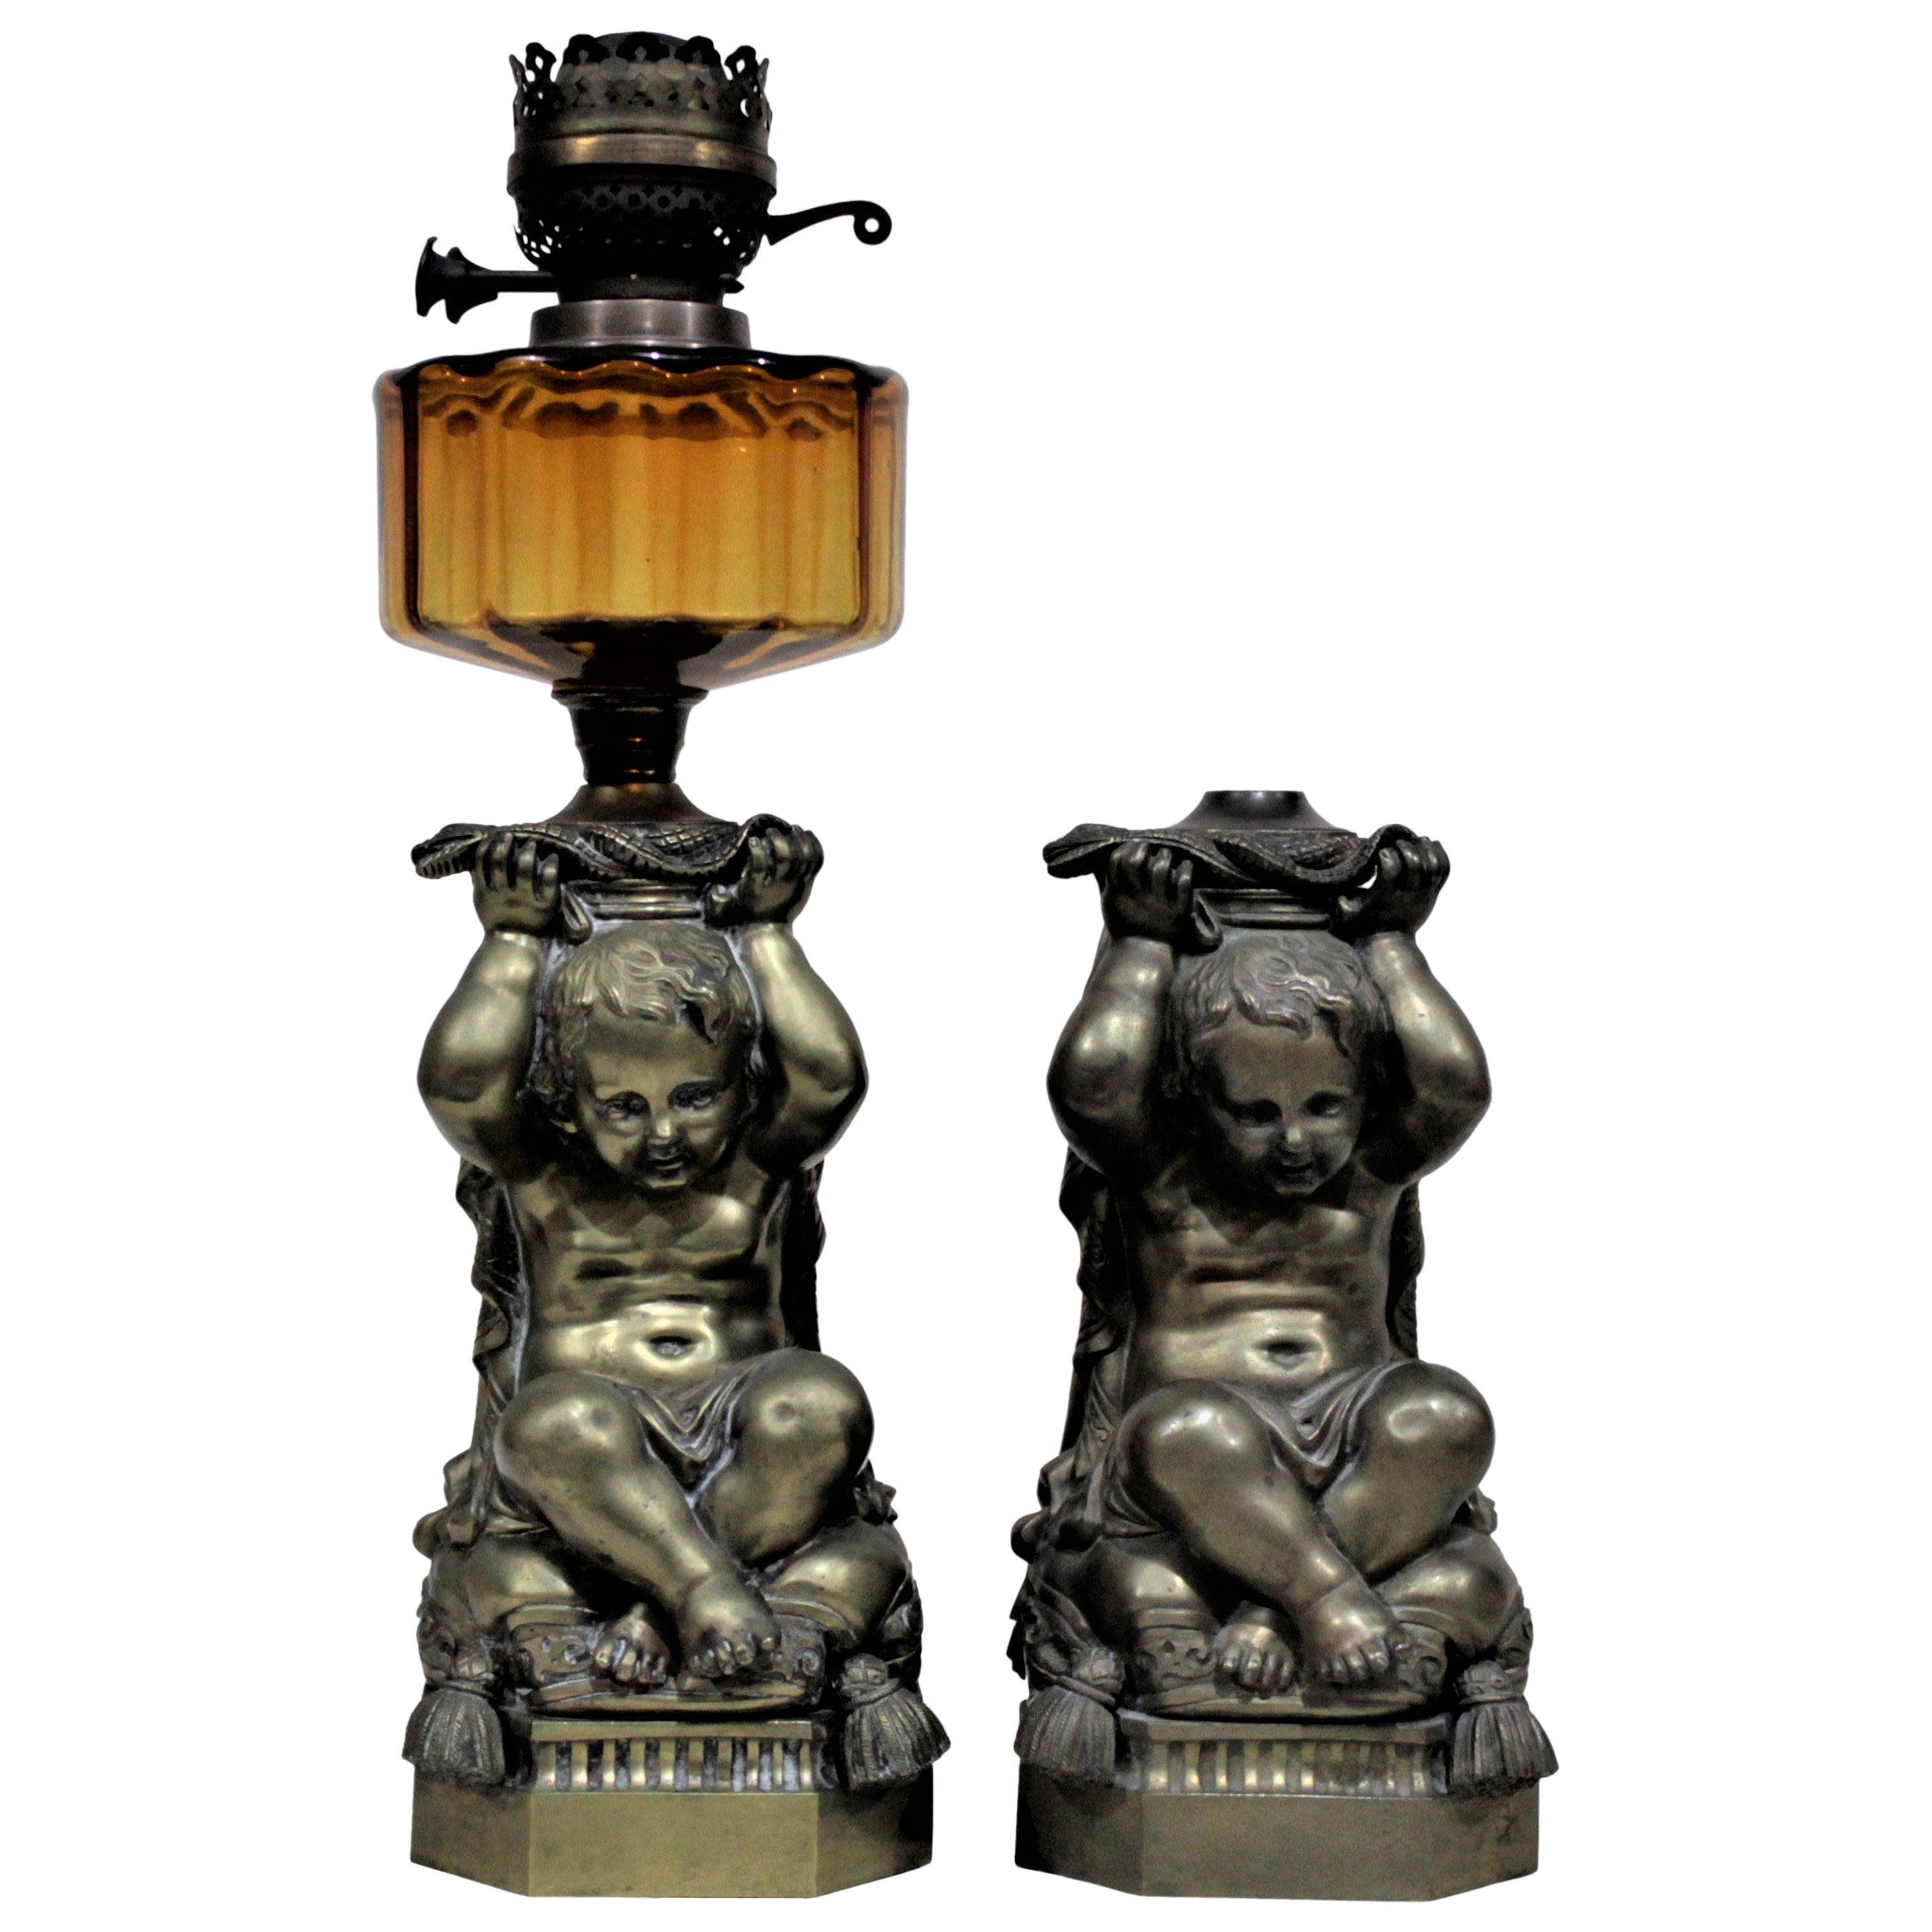 Pair of Victorian Solid Cast Bronze Figural Cherub Oil Lamp Bases Holding Snakes